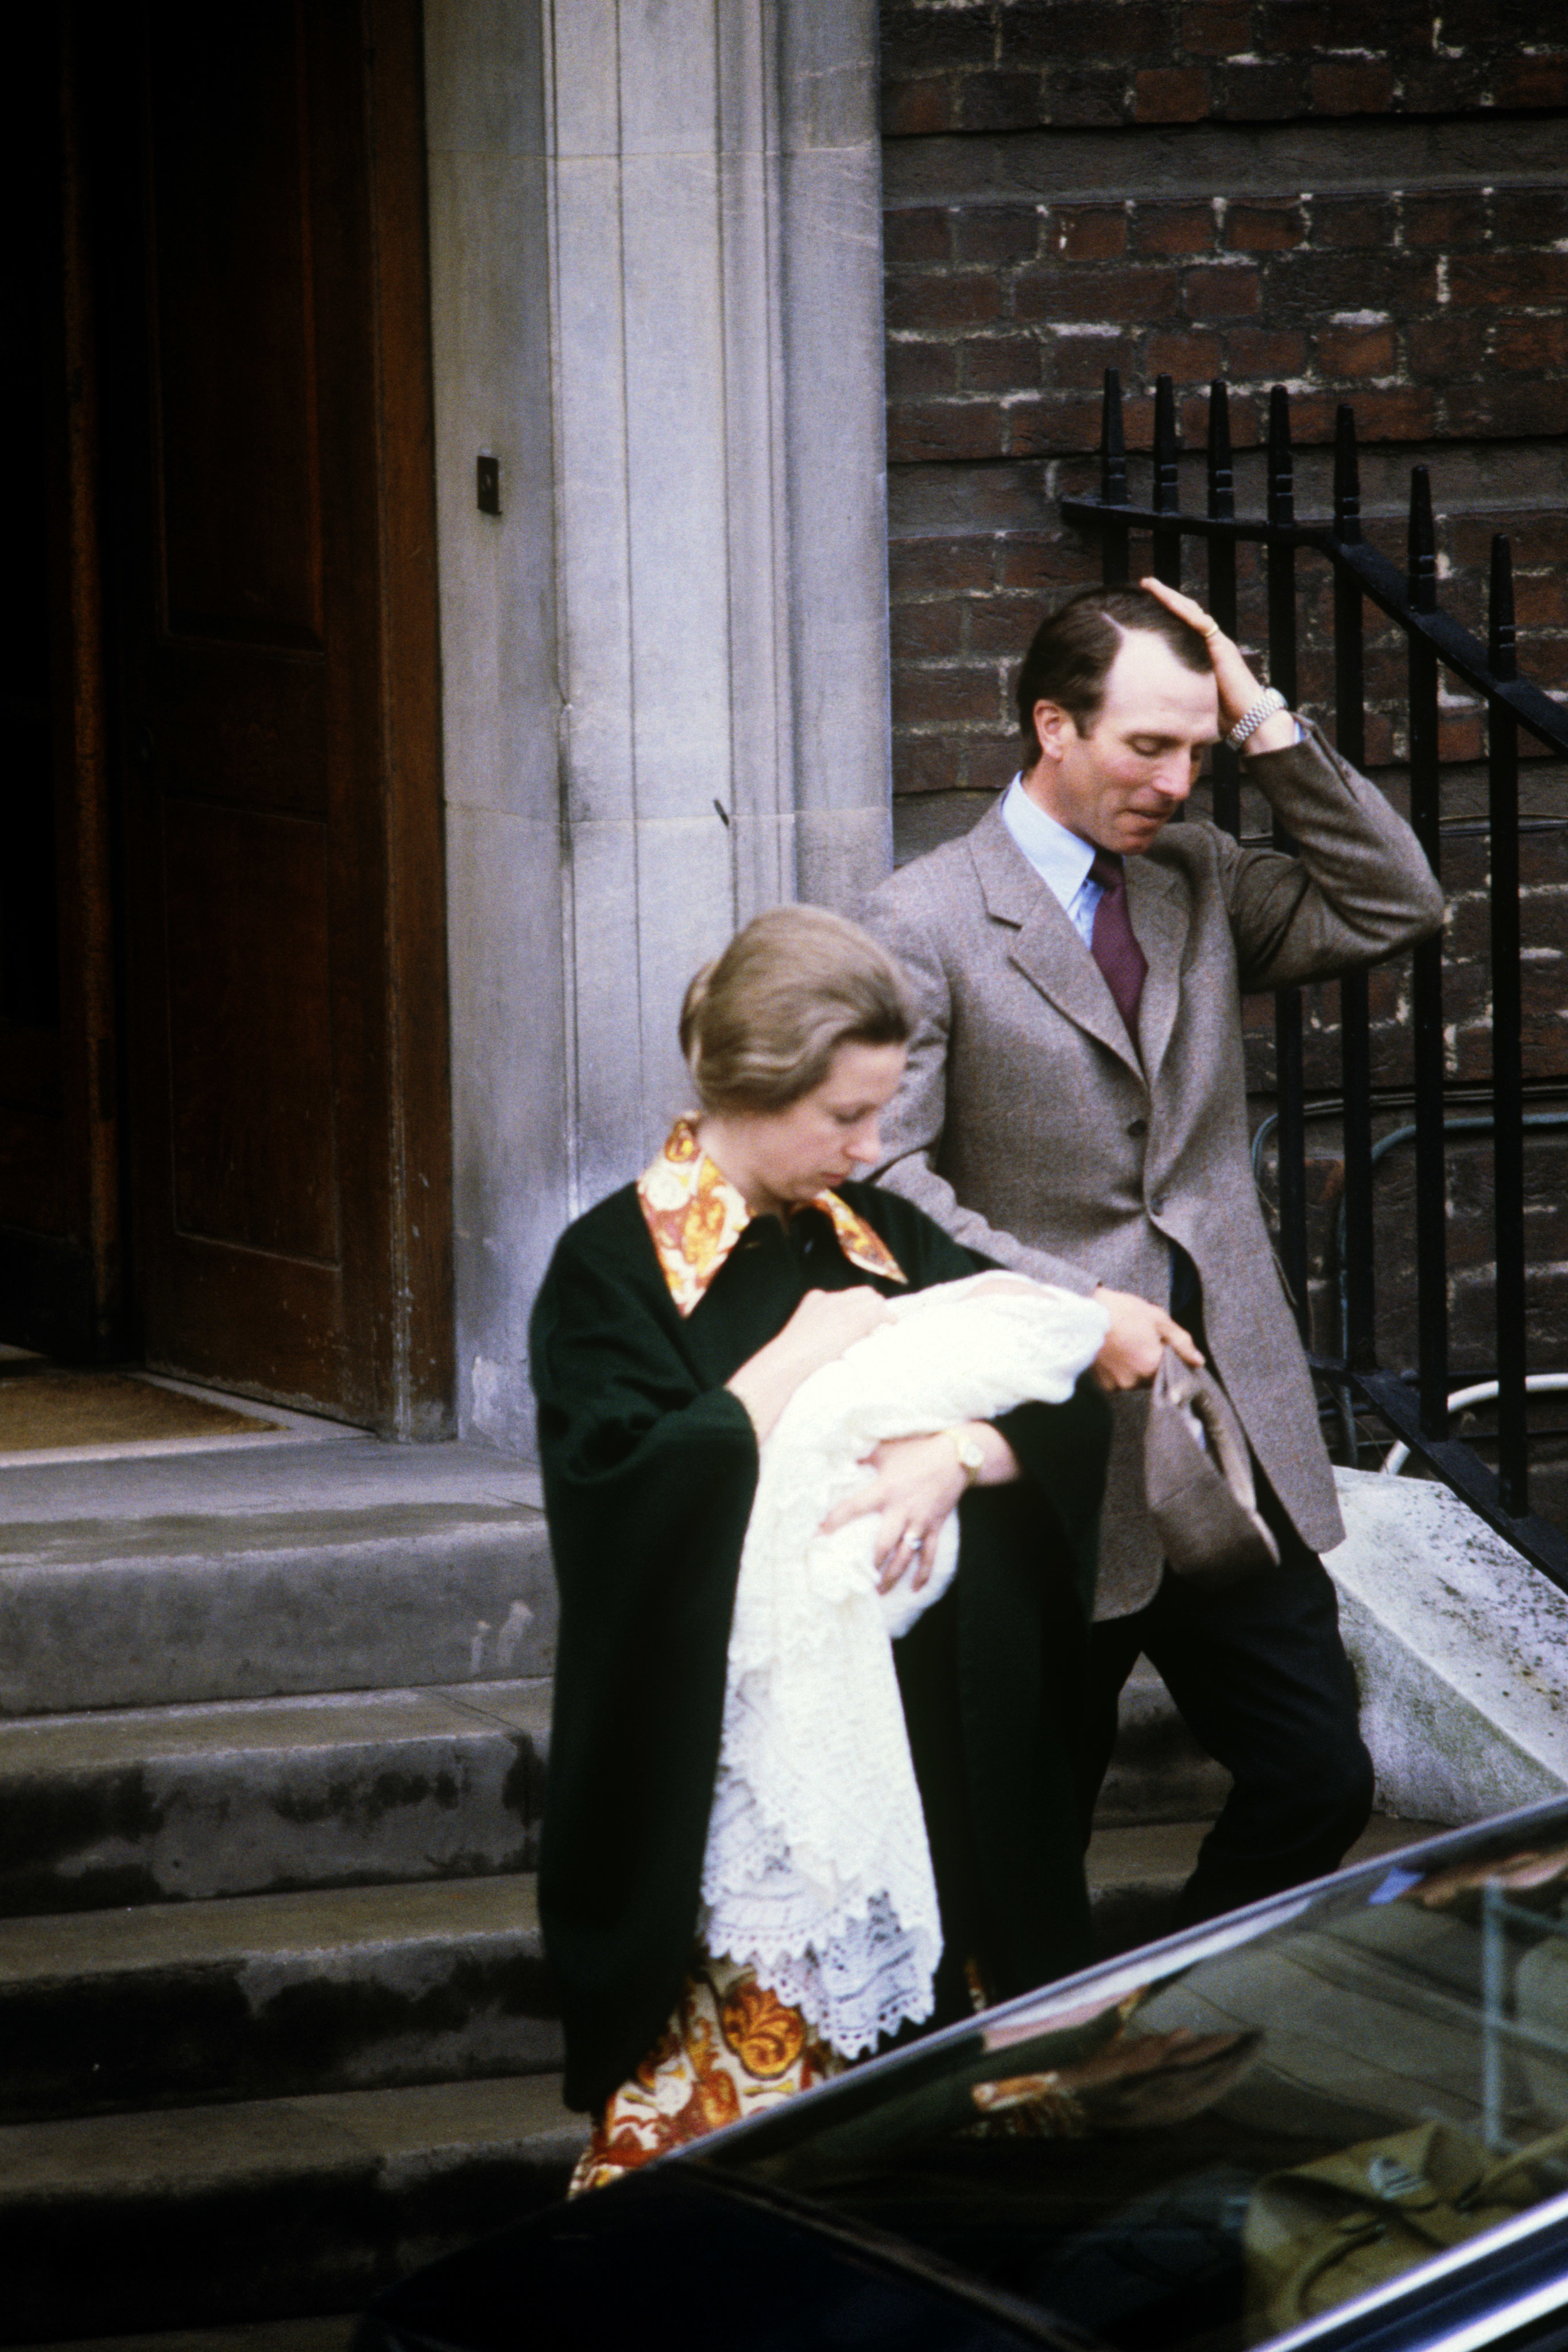 Princess Anne carrying her three day-old daughter Zara, with her husband Captain Mark Phillips, leaving St Mary's Hospital